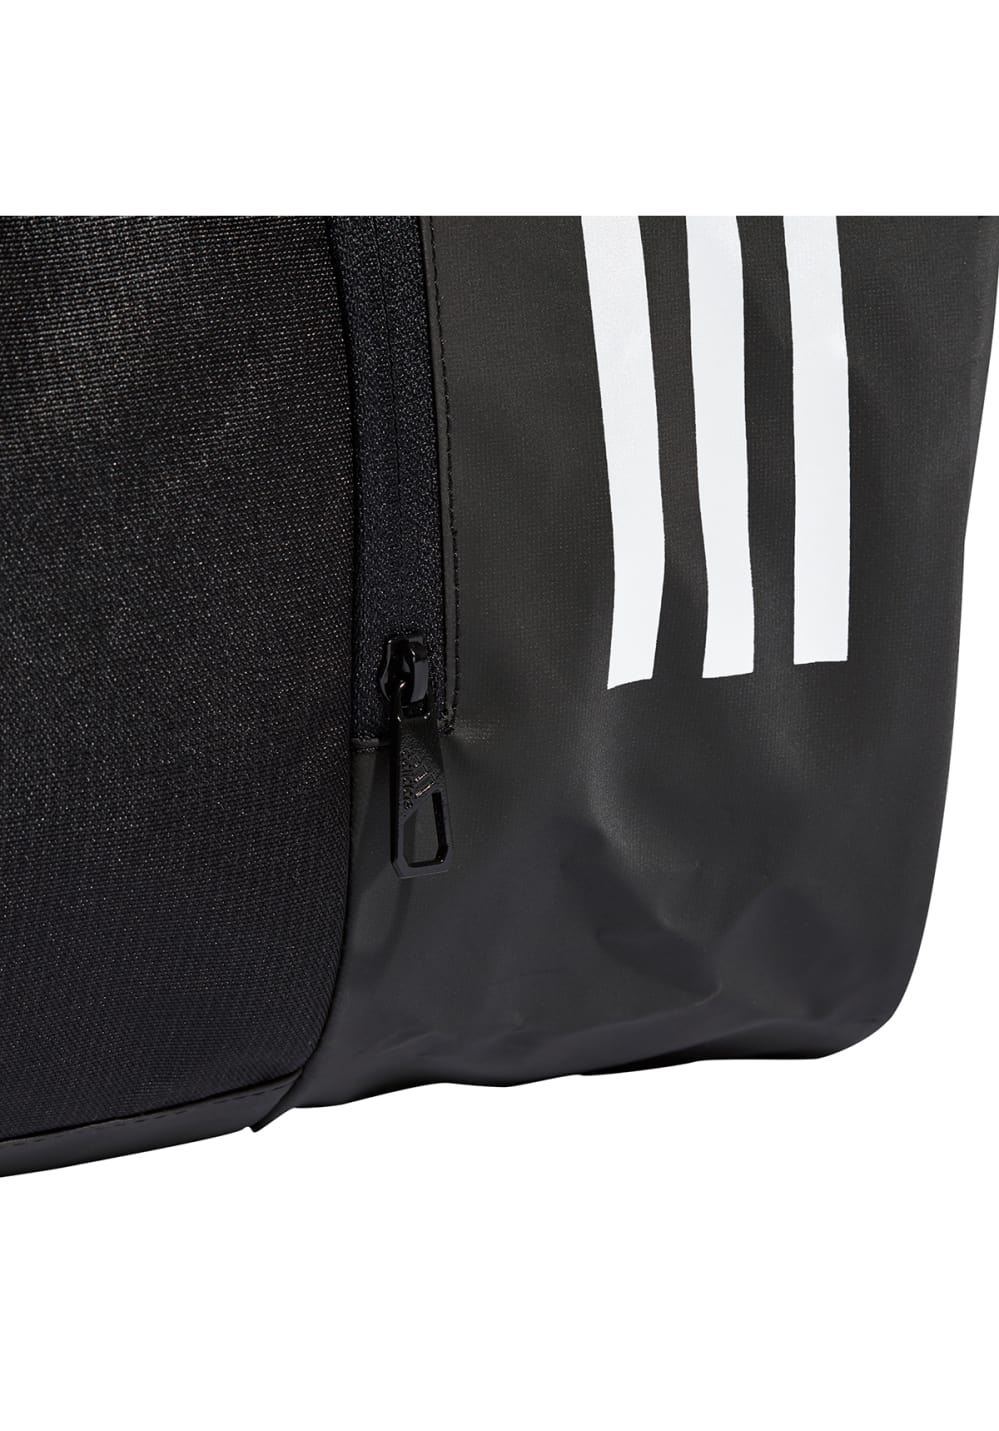 af83c0465a7a Next. -50%. This product is currently out of stock. adidas. Convertible 3-Stripes  Duffel Bag Medium ...